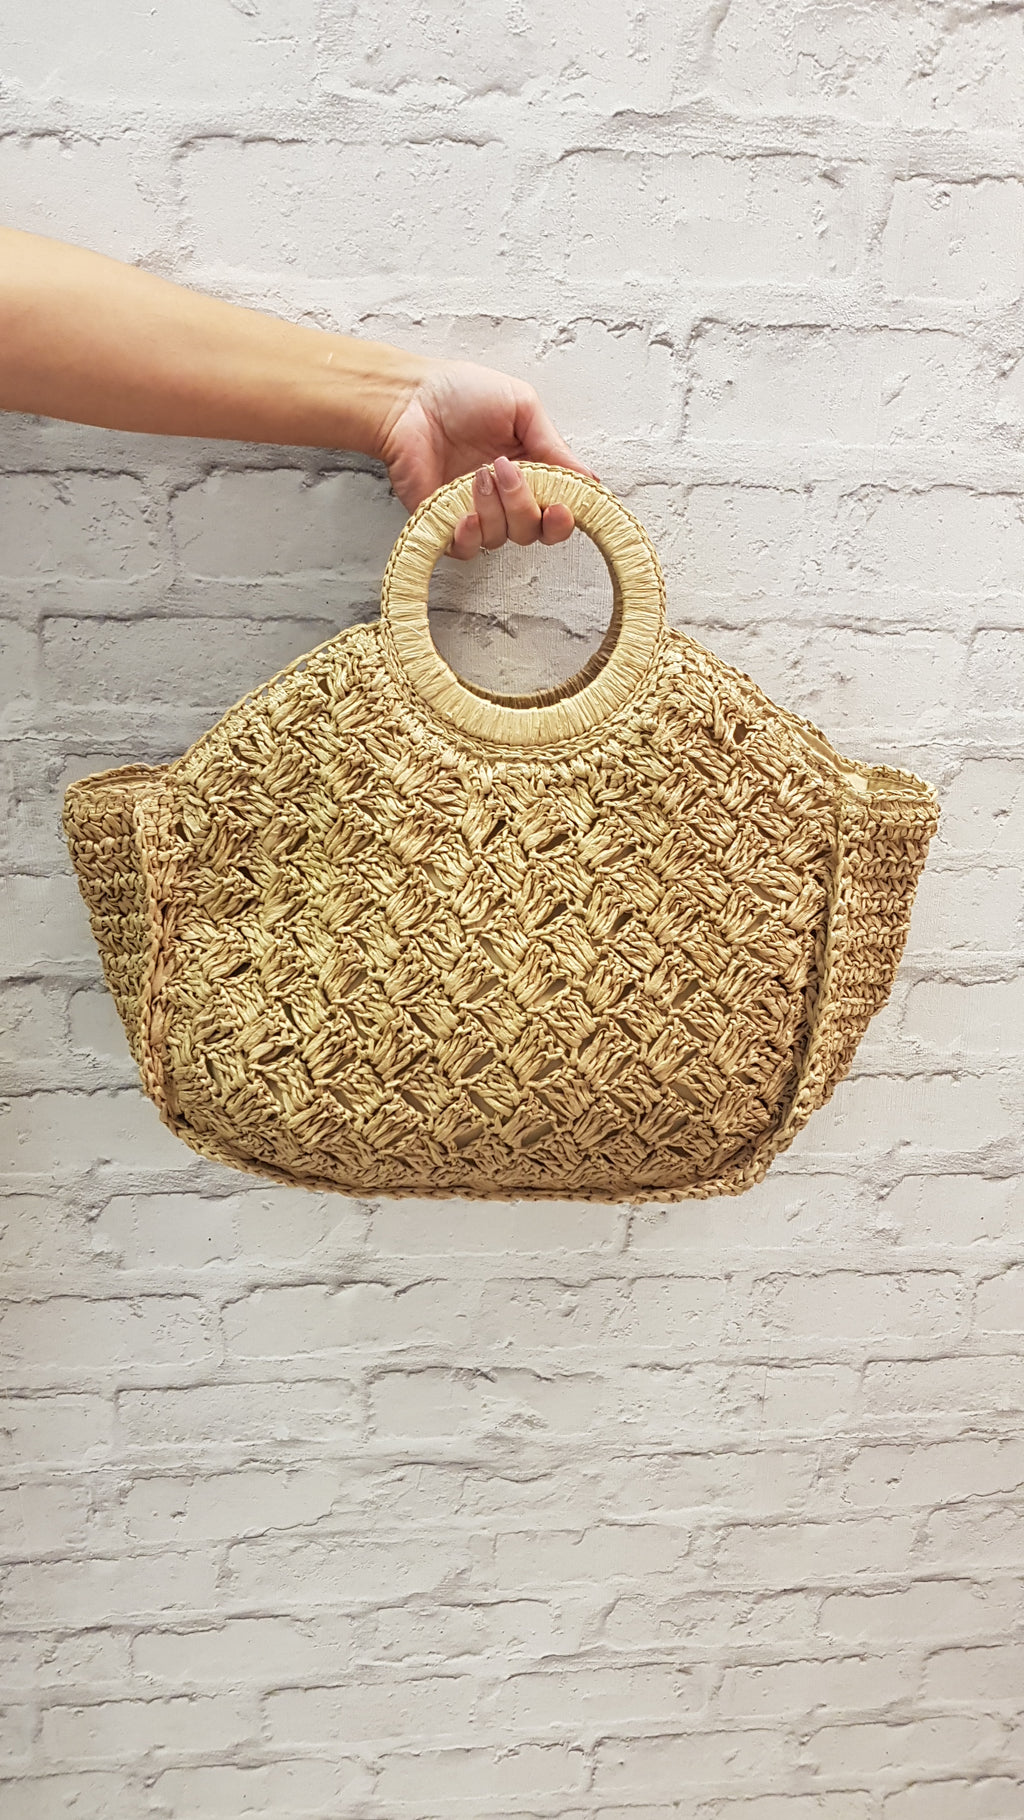 Kat Seagrass Beach Bag